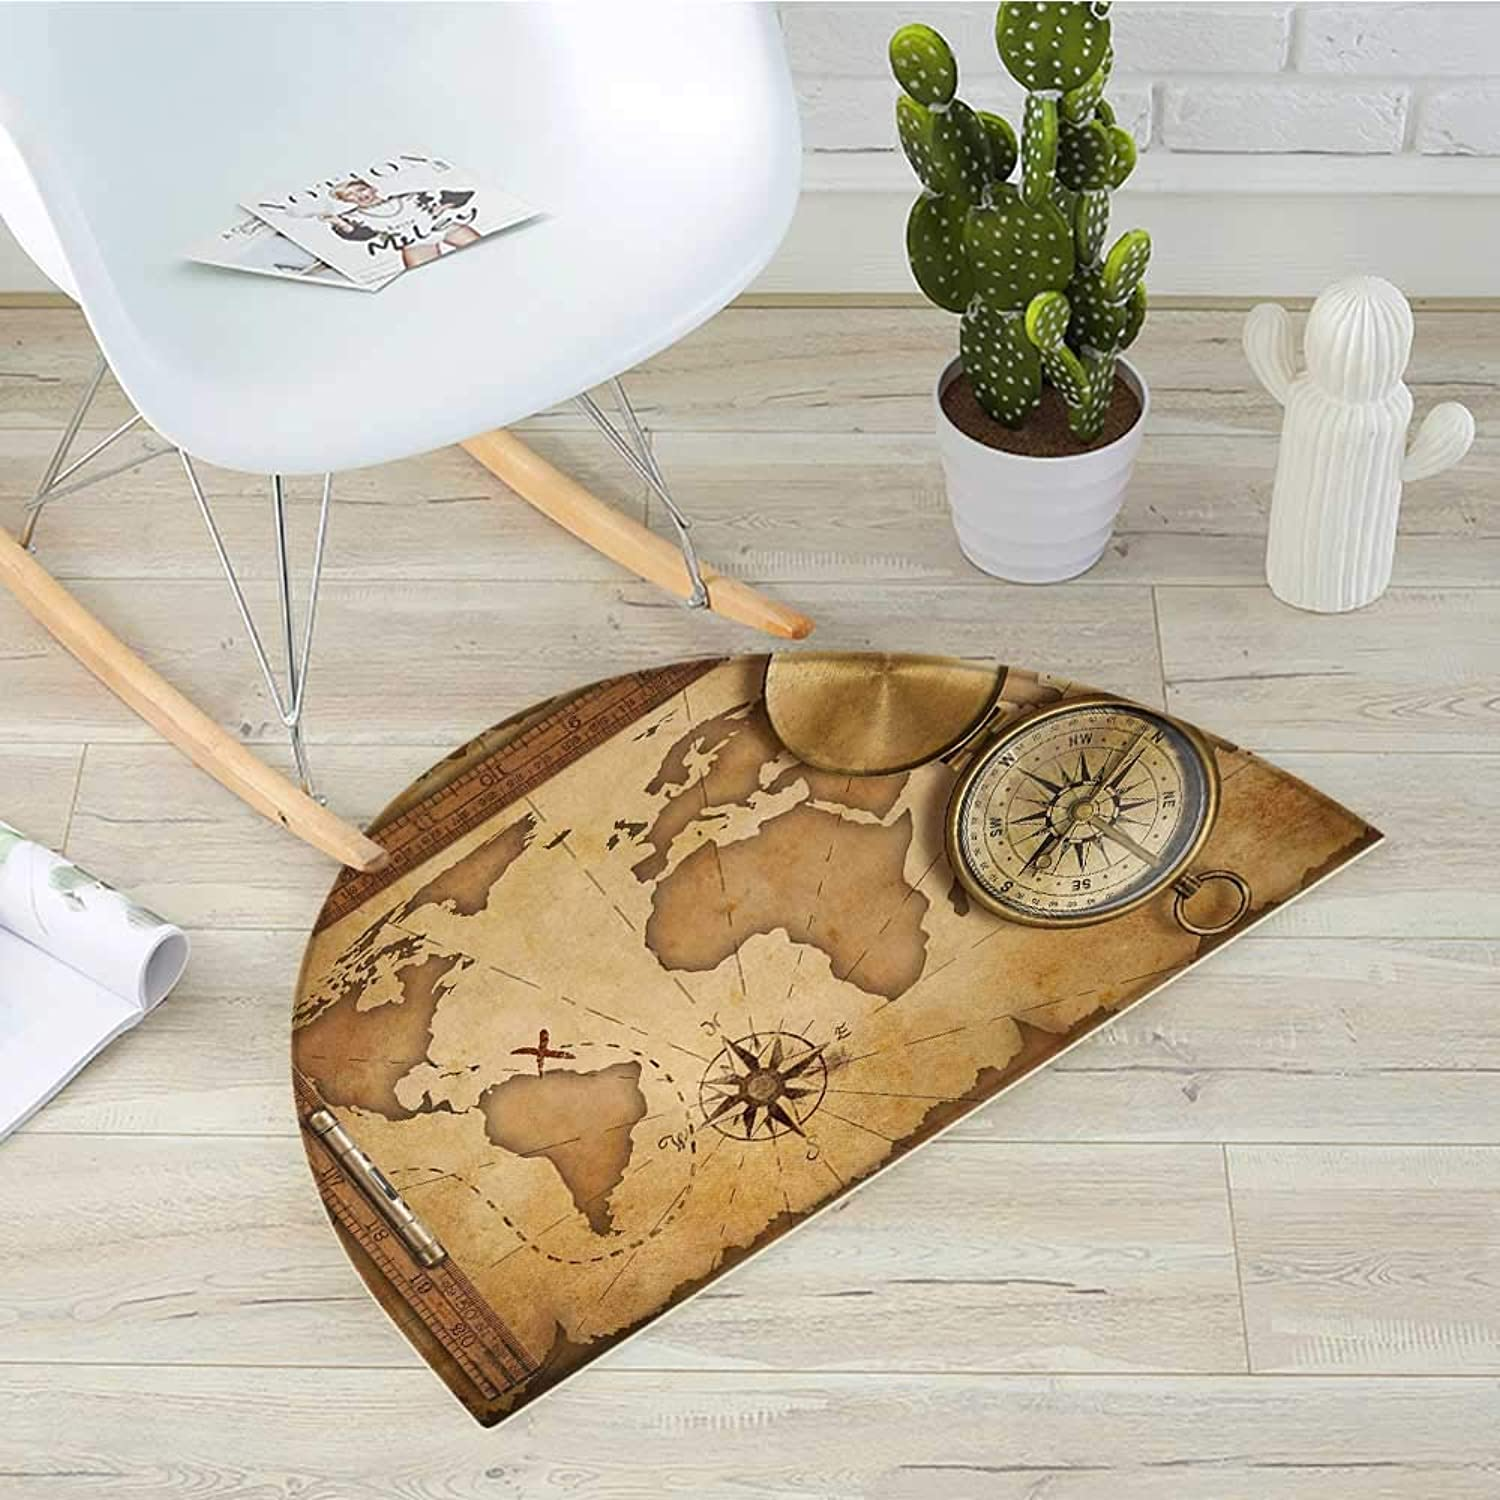 Map Semicircular CushionAged Vintage Treasure Map Ruler Rope Old Compass Antique Adventure Discovery Entry Door Mat H 35.4  xD 53.1  Brown Pale Brown